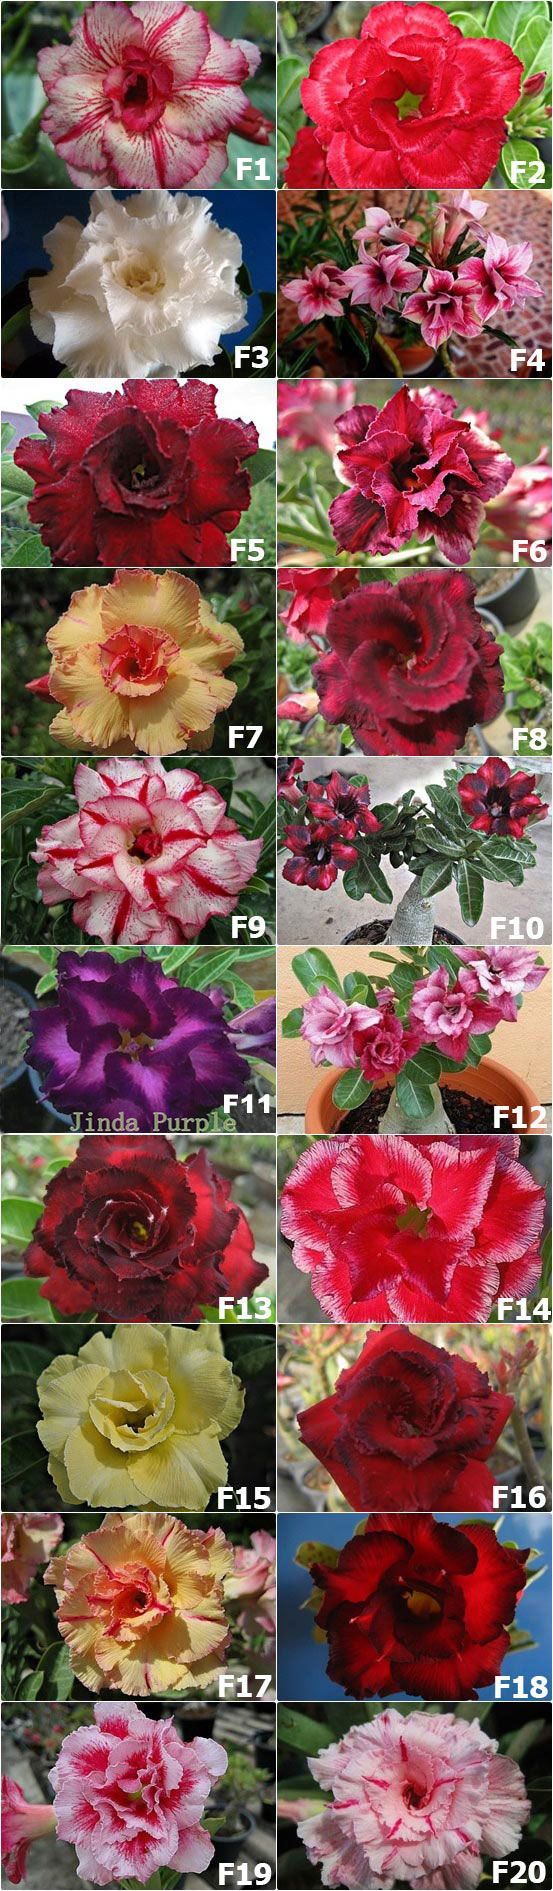 Crib for sale in thailand - New Rosy Adenium Thailand Cheap Desert Rose Plant For Sale